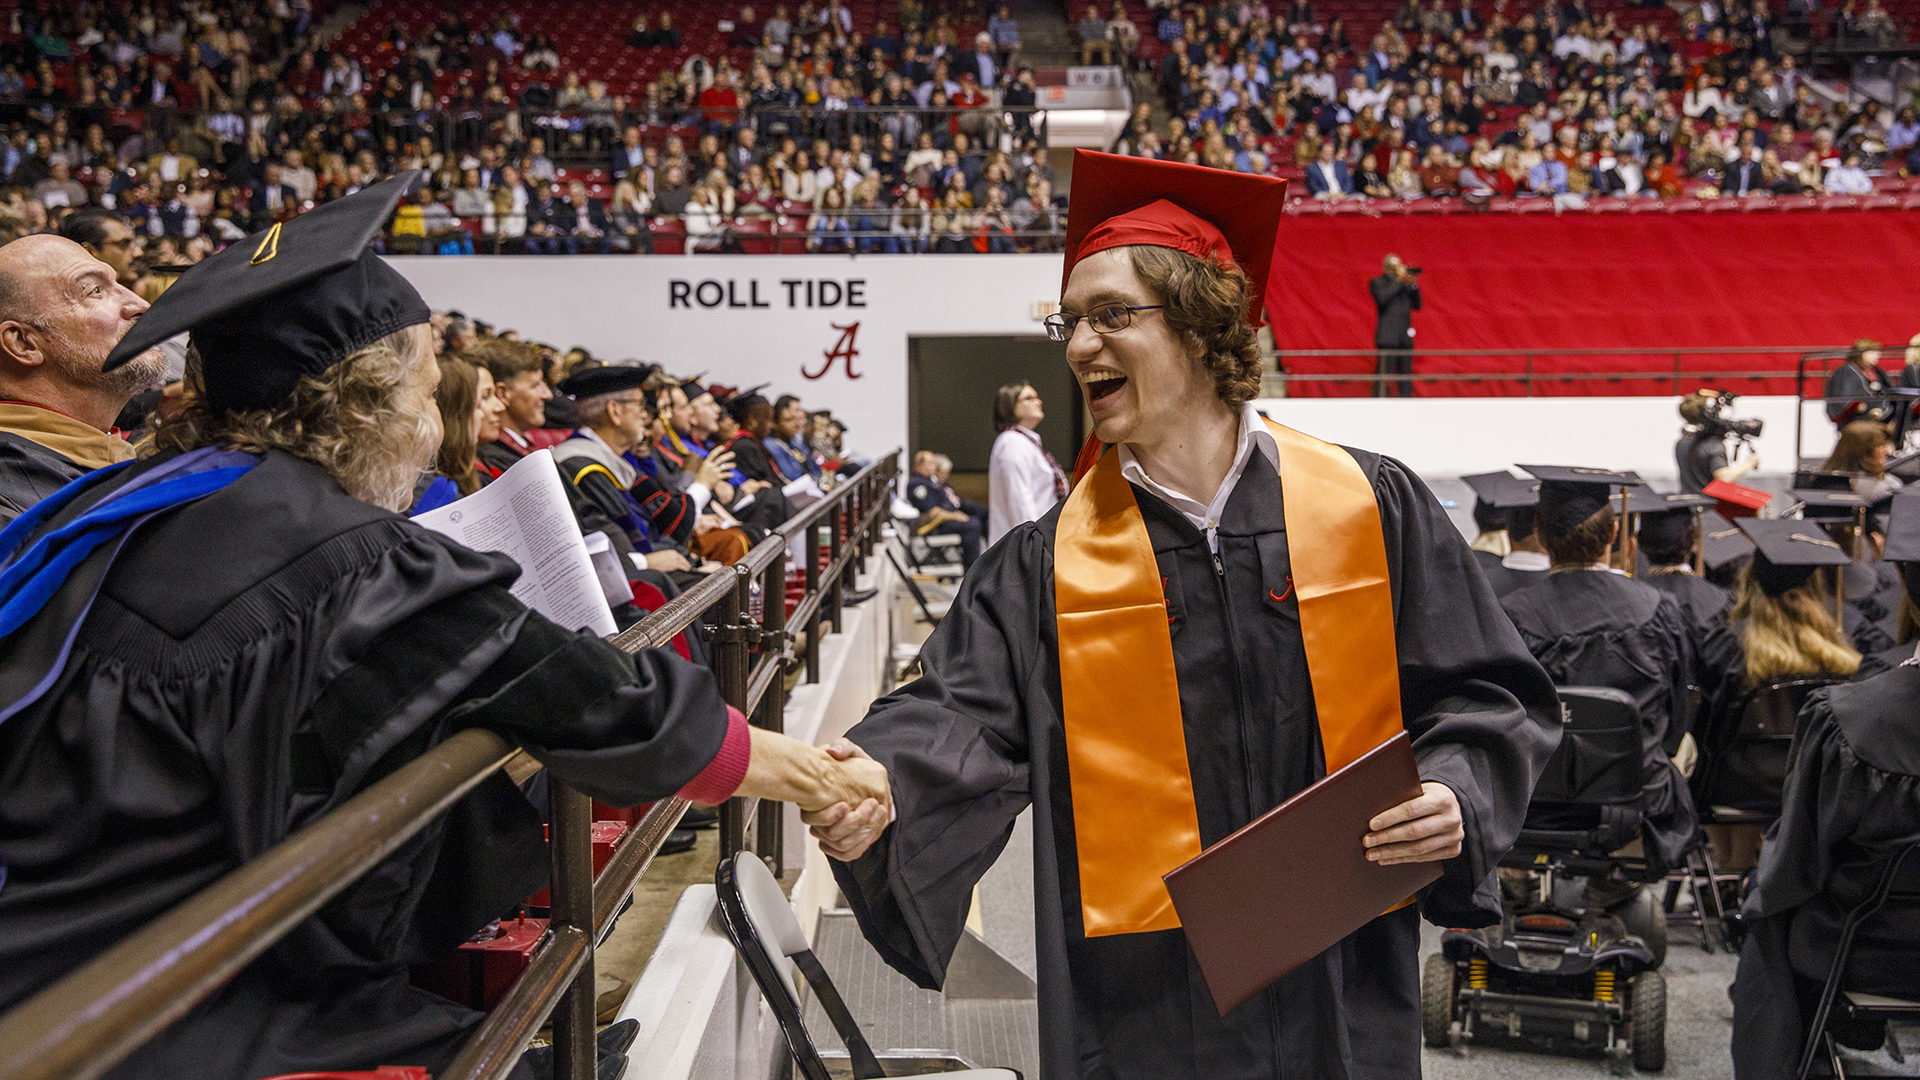 A graduate shakes hands with a professor as they walk past the stands.